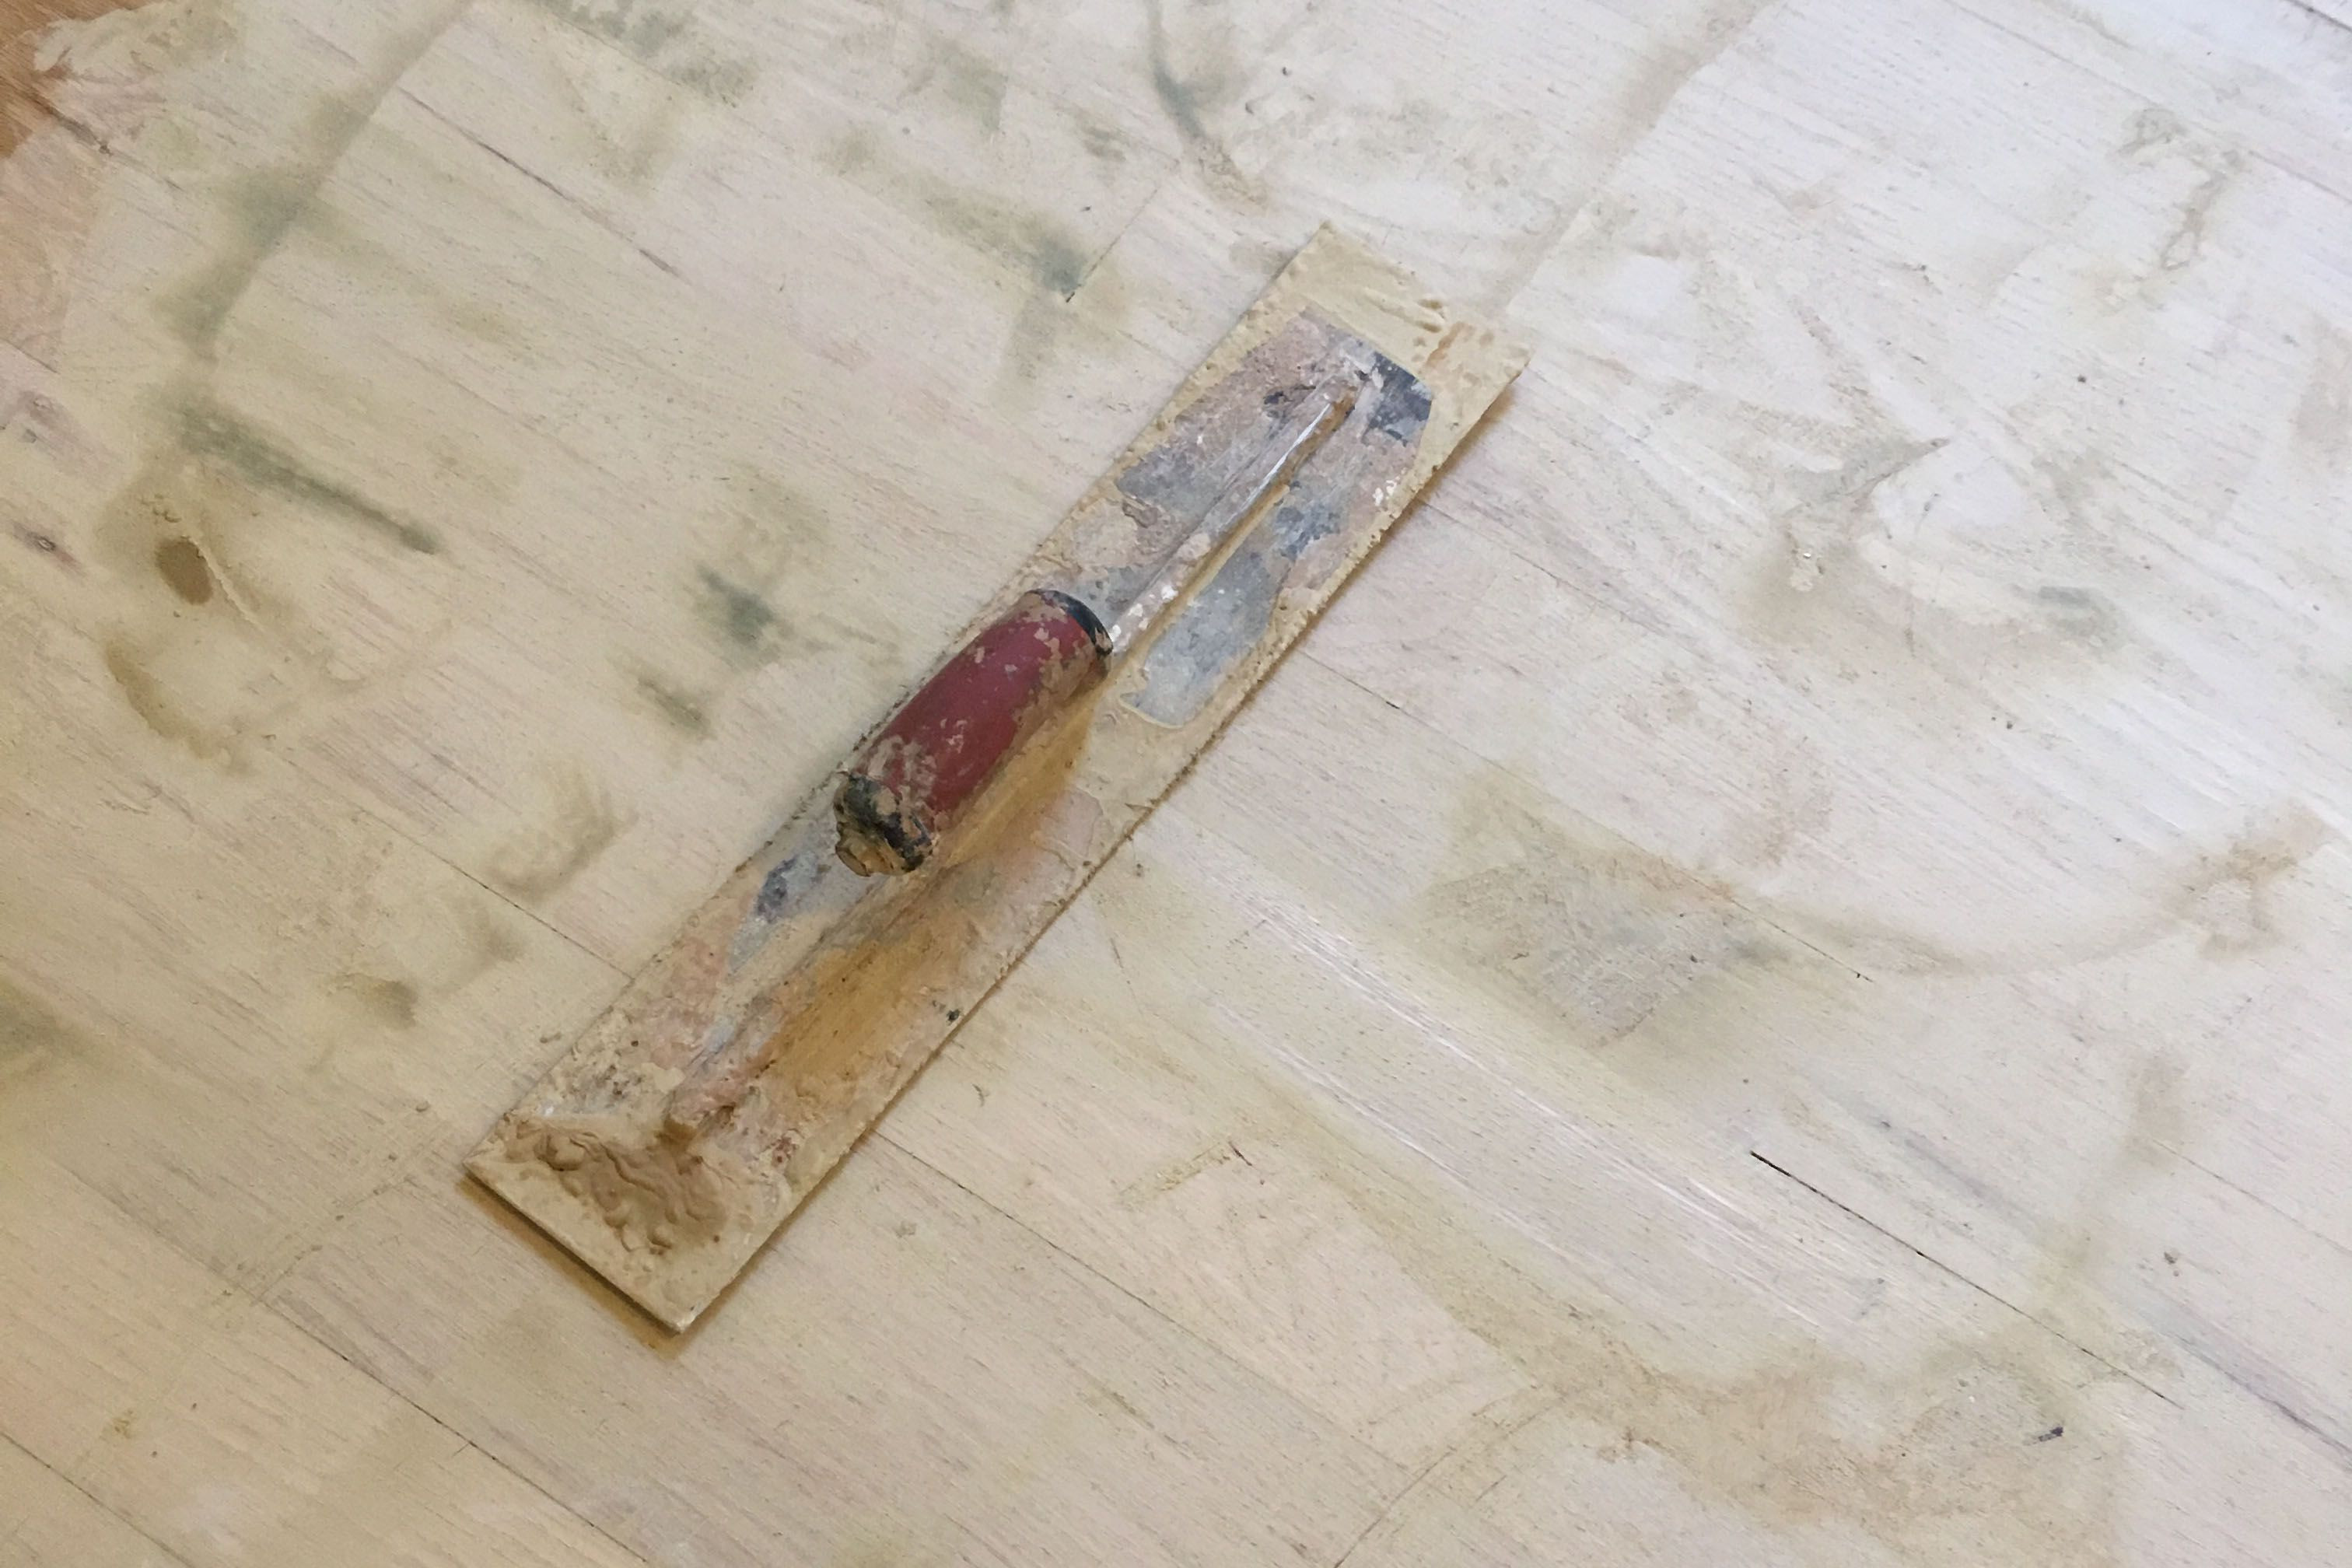 restaining hardwood floors diy of 7 things to know before you refinish hardwood floors for trough hardwood floor manhattan avenue via smallspaces about com 579138783df78c173490f8a5